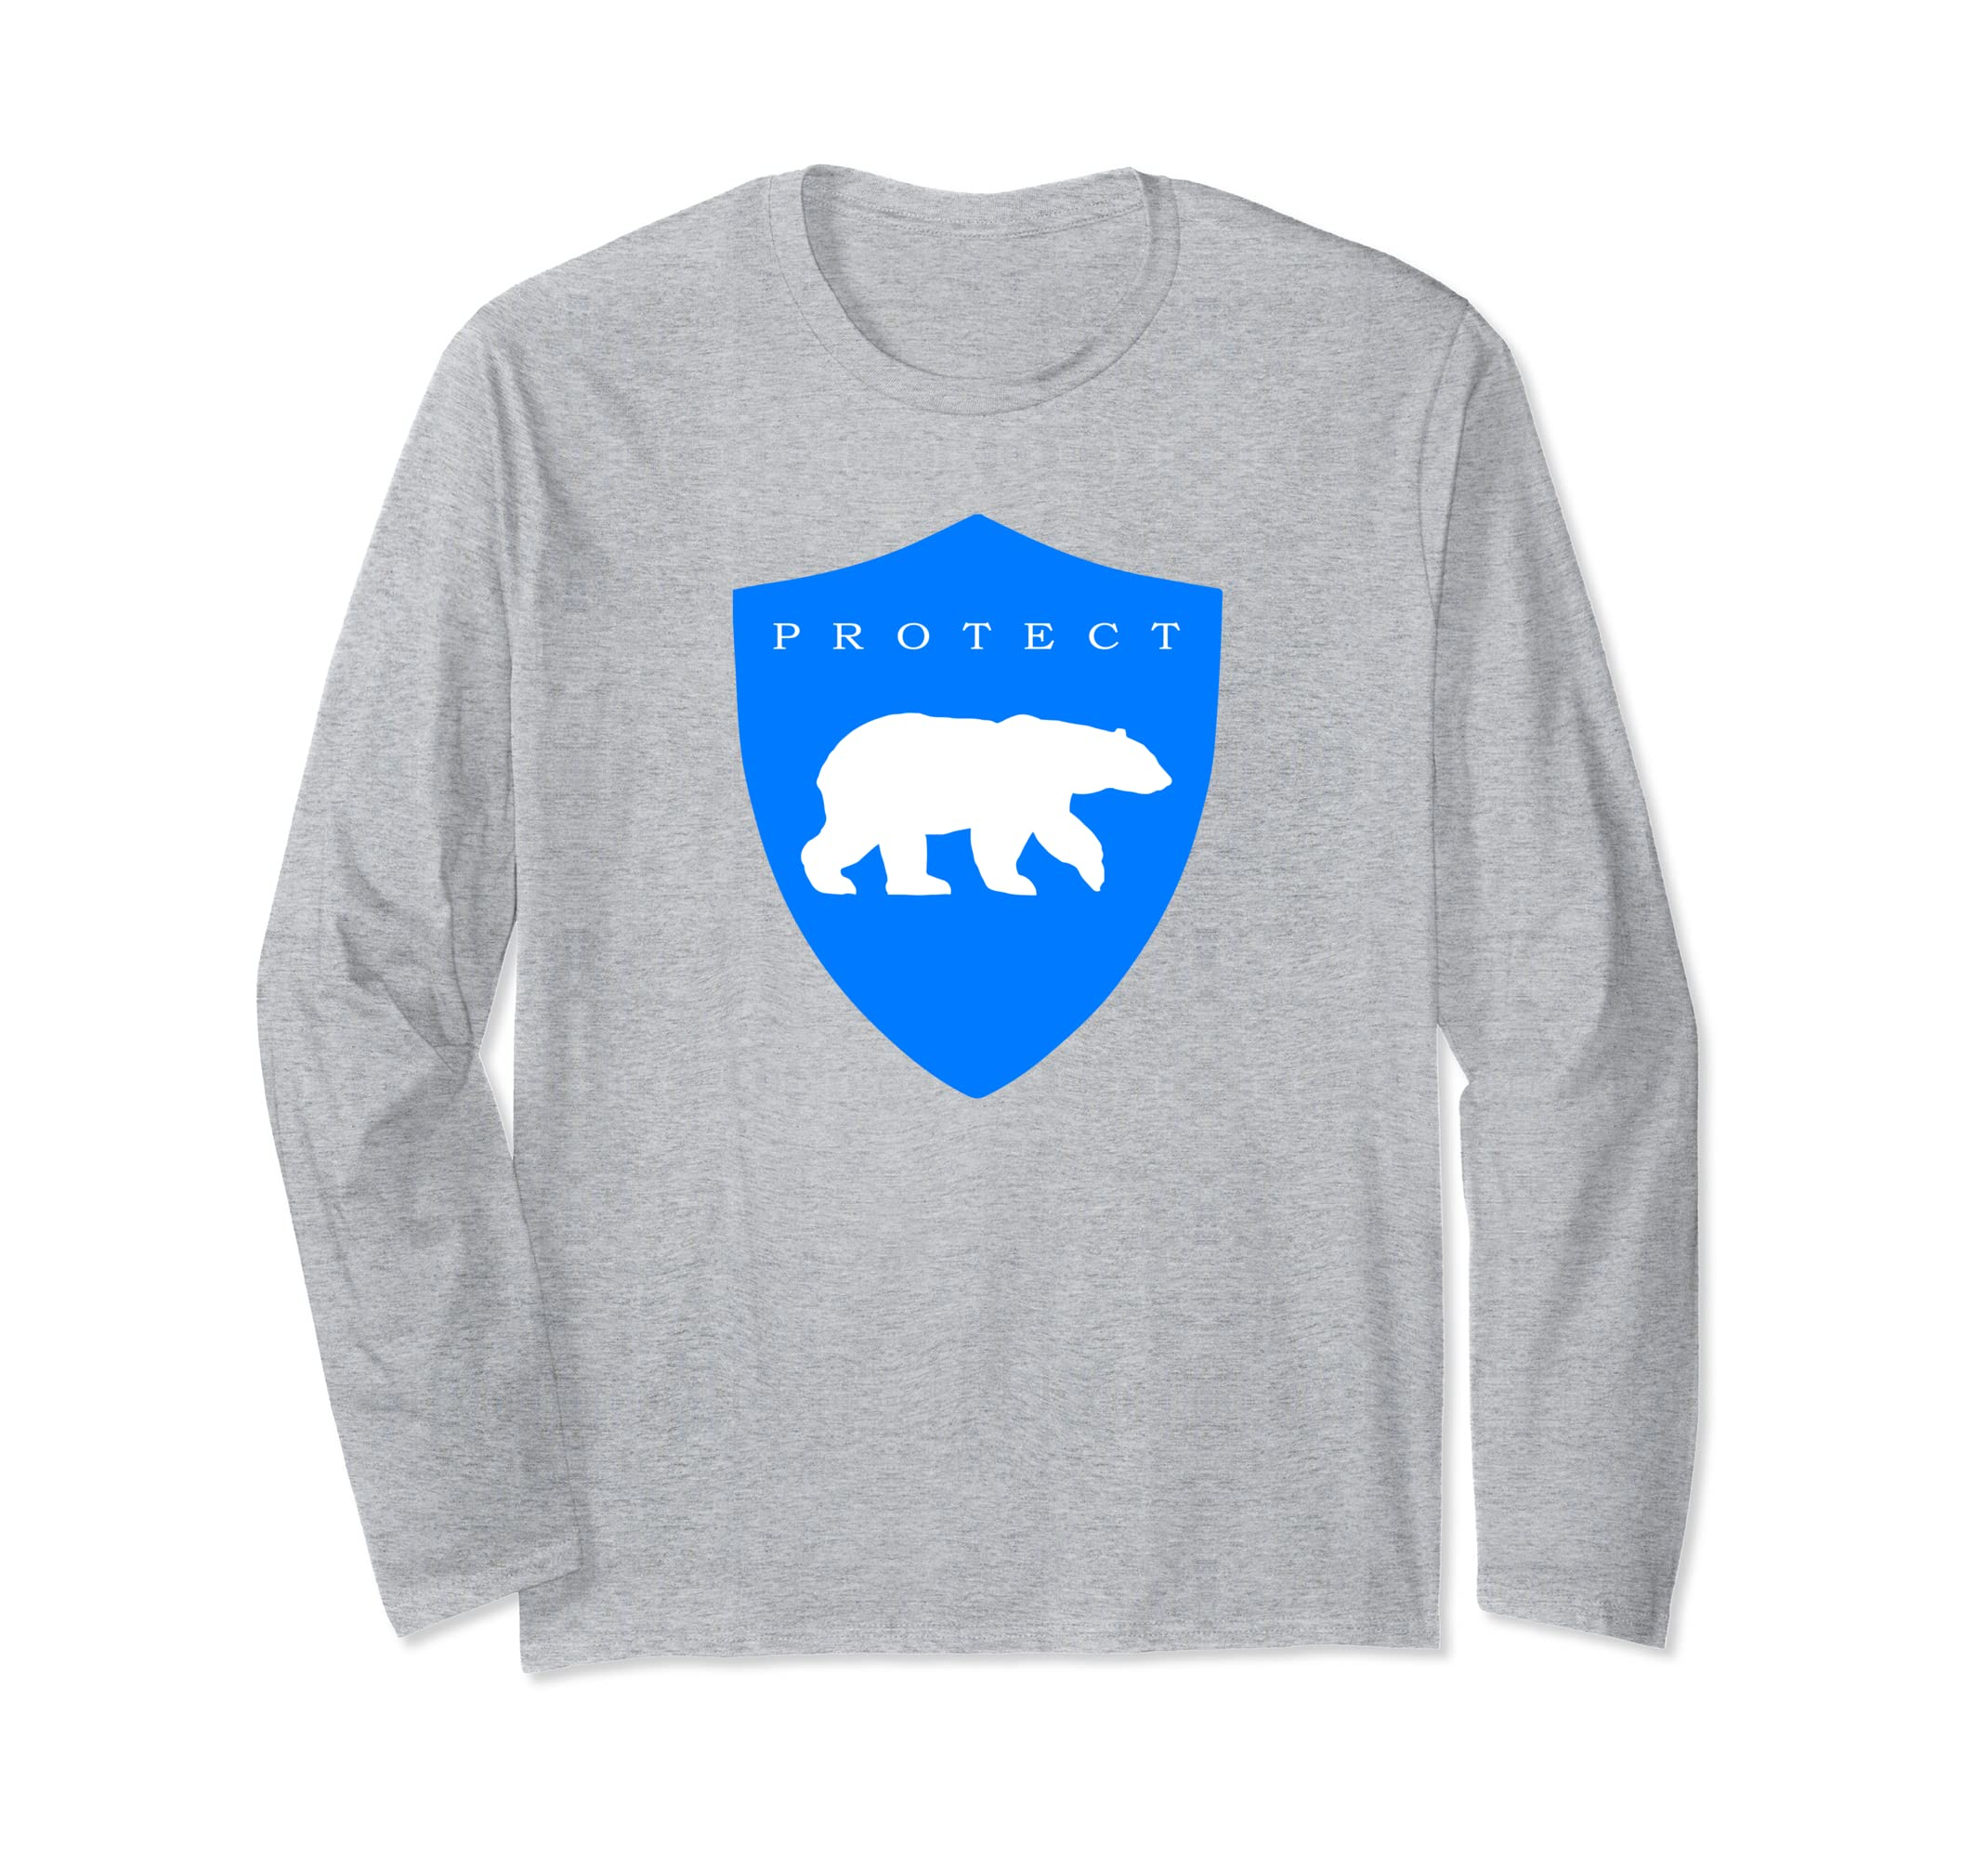 Protect Polar Bears Eco Awareness Long Sleeve T-Shirt-azvn